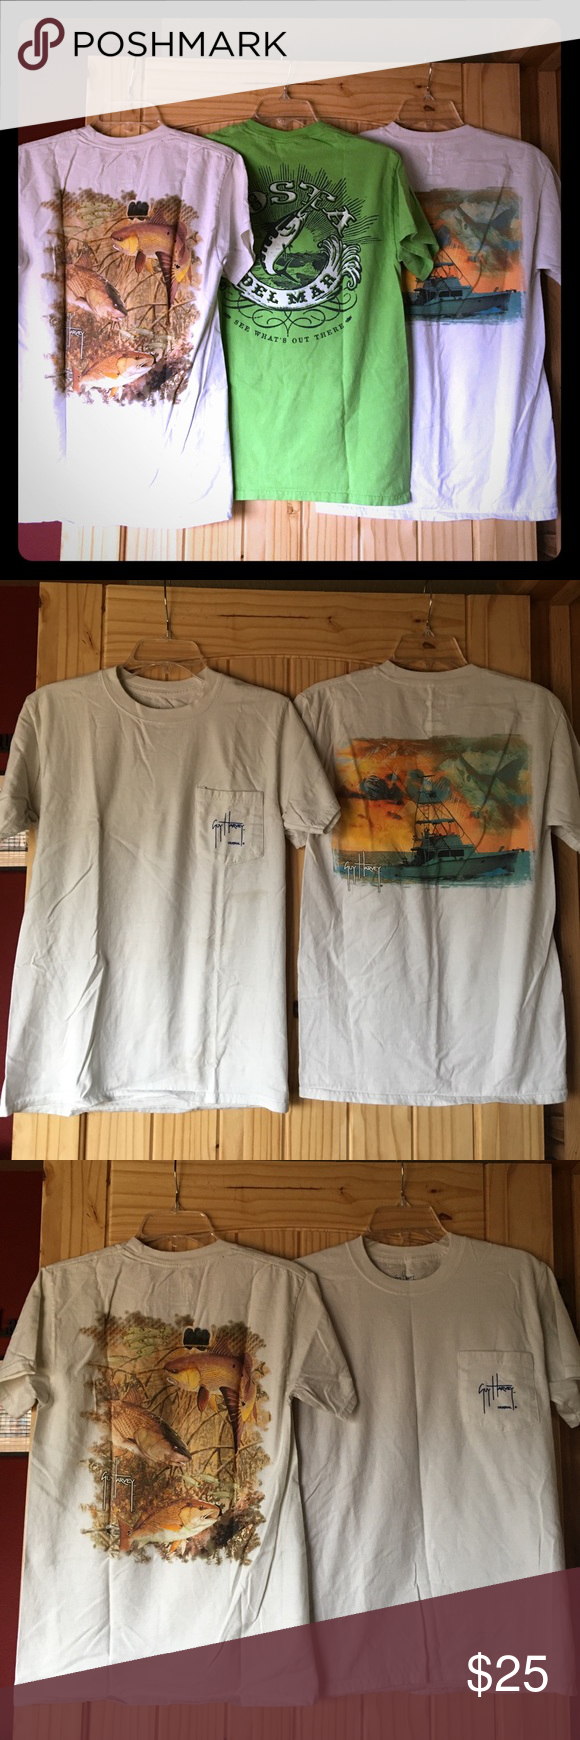 Set of 3 size small Guy Harvey and Costa T-shirts Set of 3 size small T-shirts. 2 white ones are Guy Harvey and the lime green one is Costa. All are size small. The two Guy Harvey shirts have a front chest pocket with the Guy Harvey logo. In good condition! Costa Tops Tees - Short Sleeve